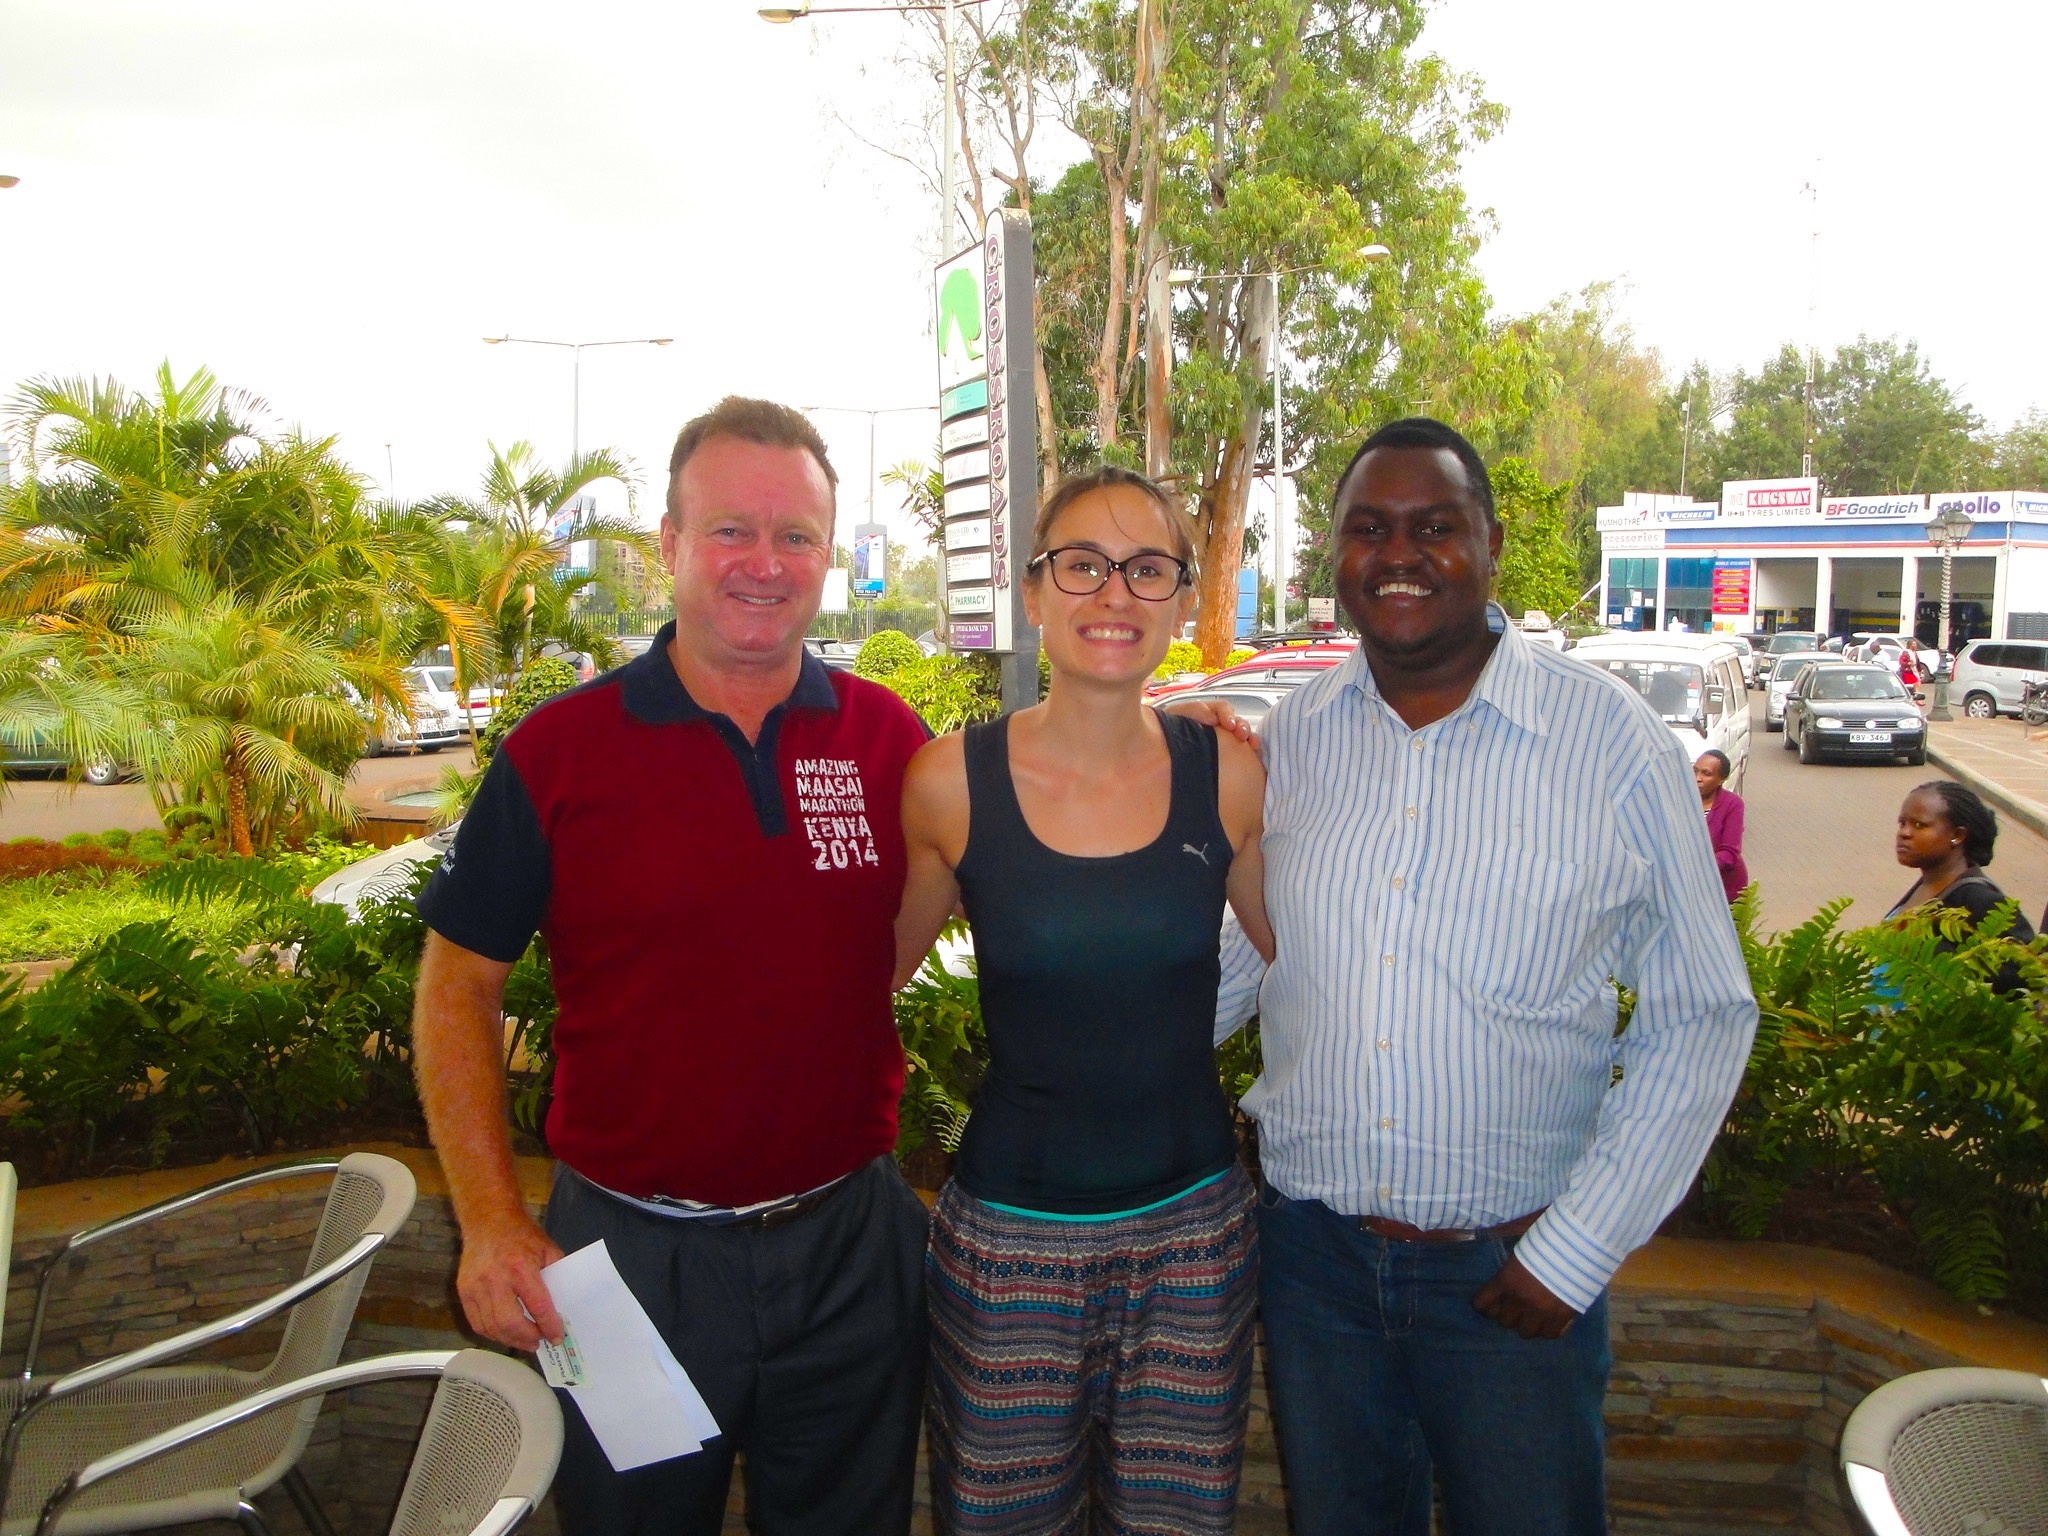 Meeting Michael and James from Nairobi Marathon – Nairobi